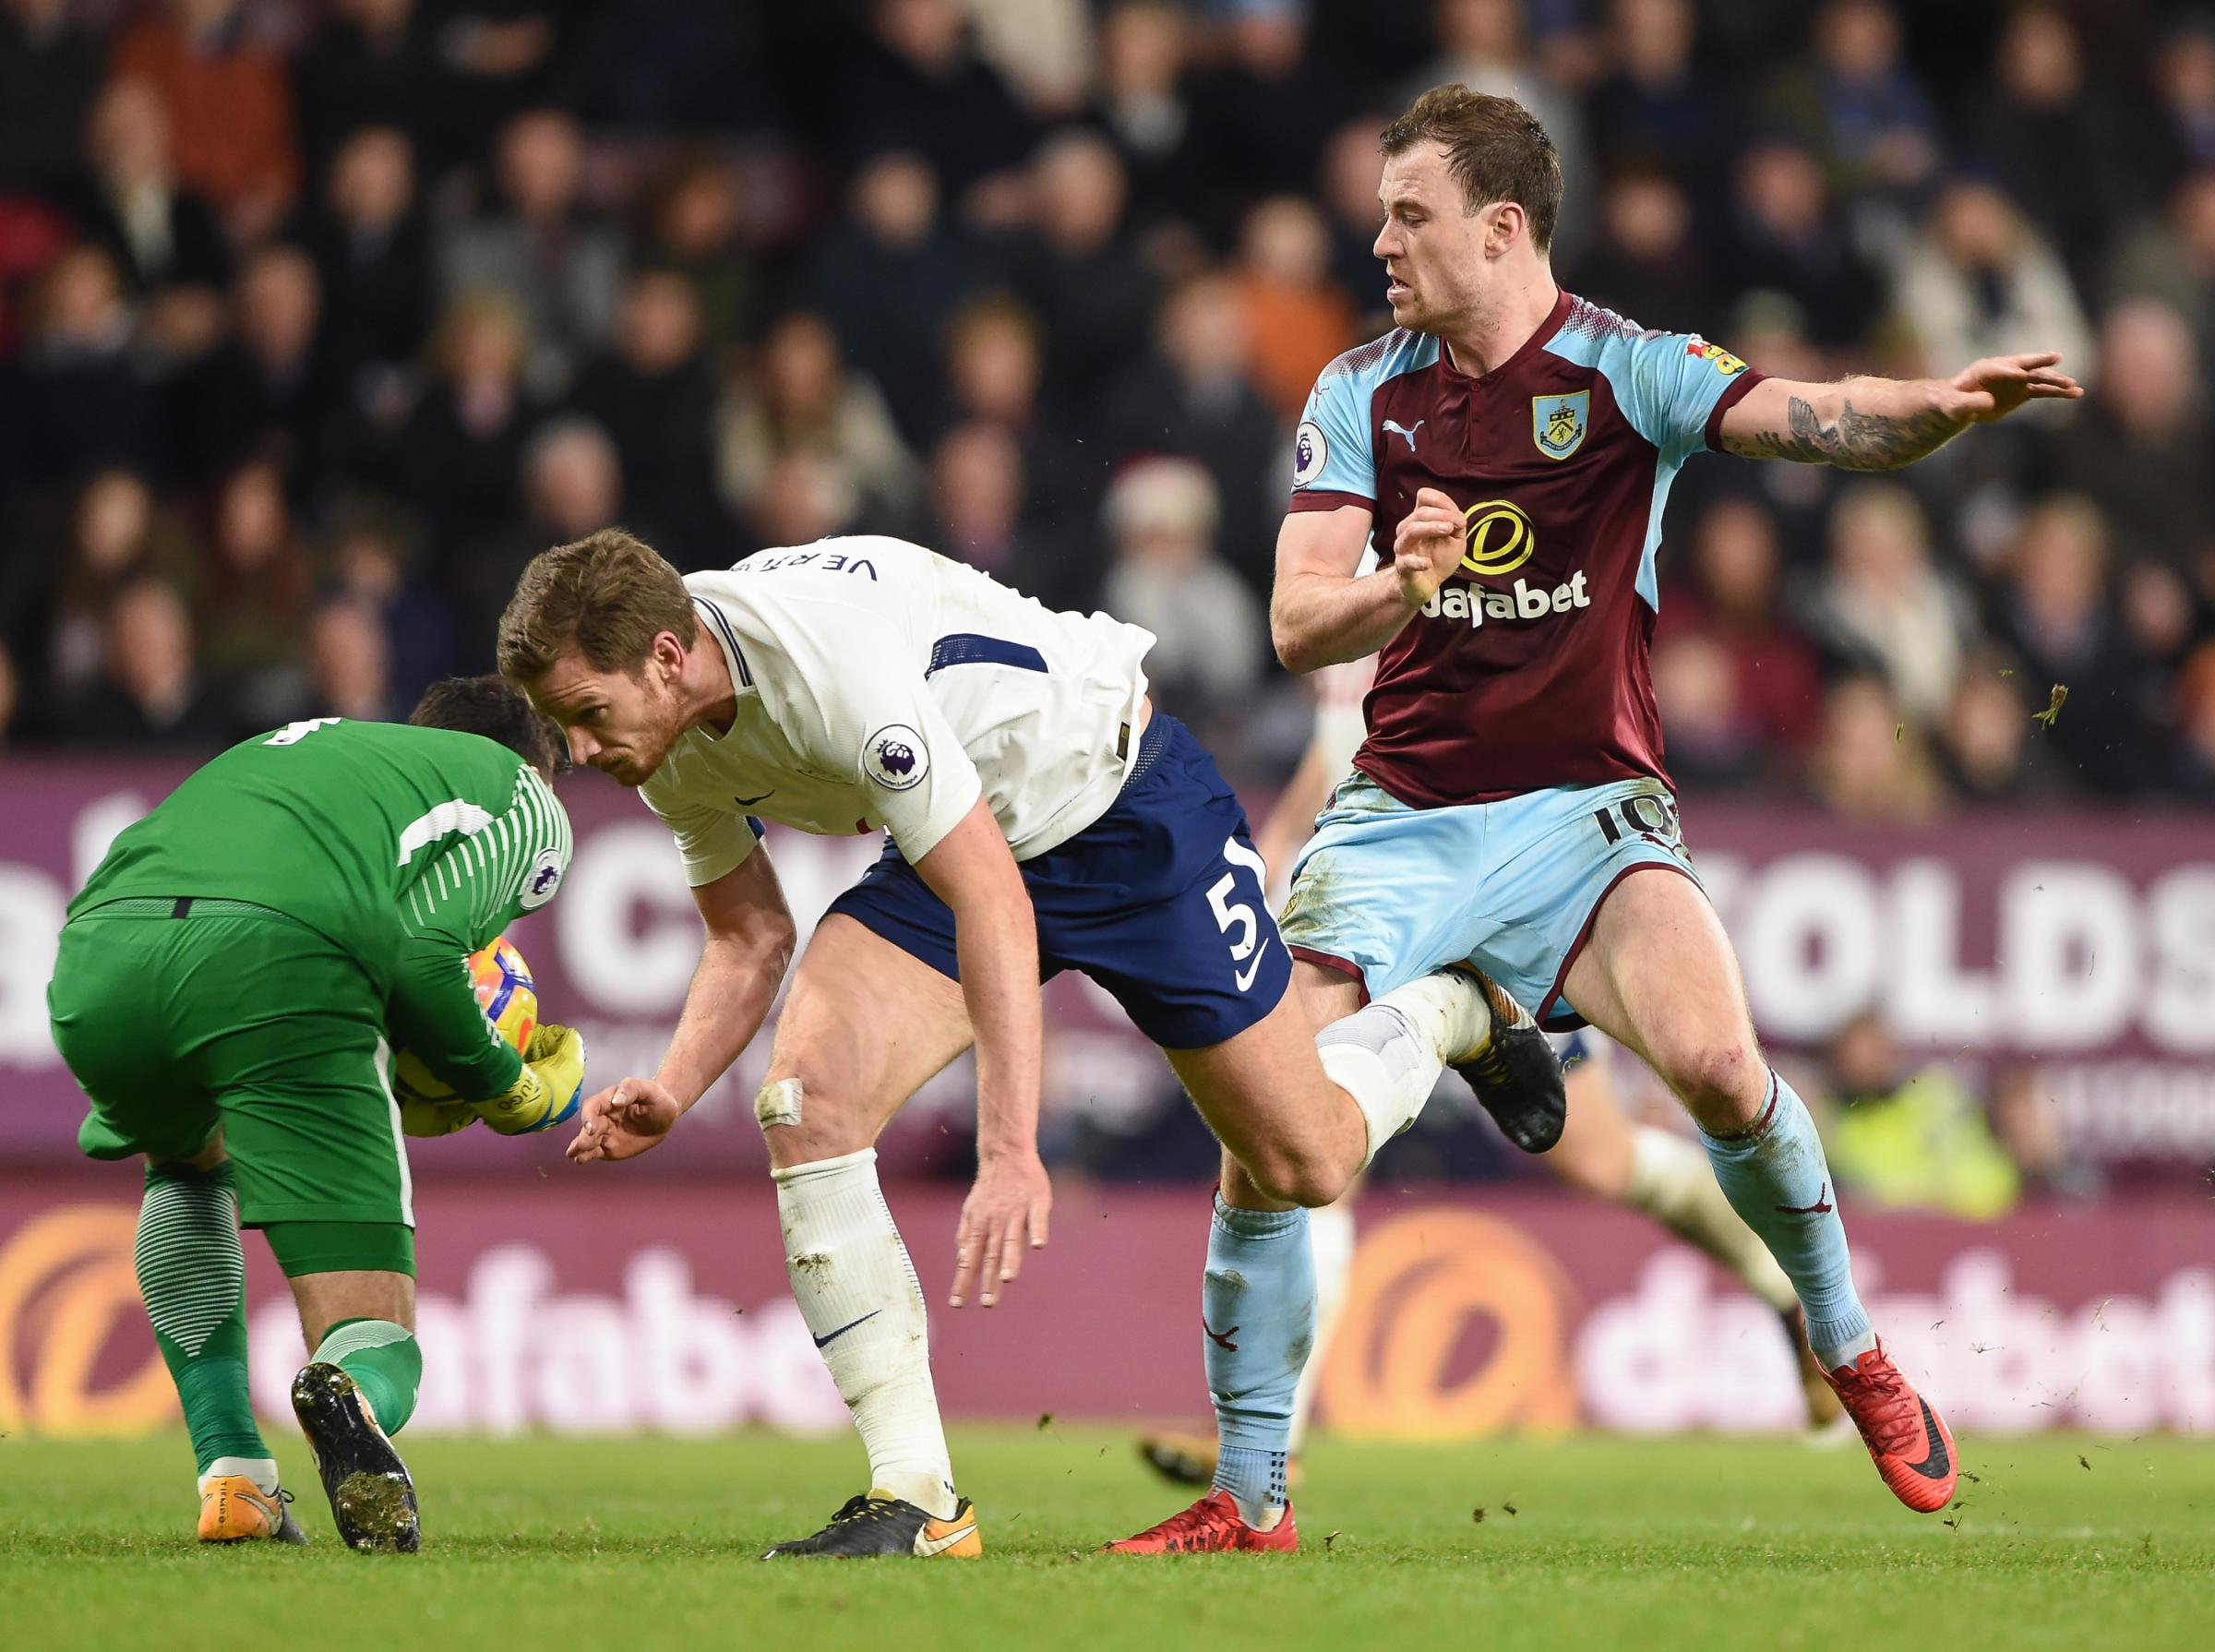 Ashley Barnes was one of four attackers named on the bench by Sean Dyche